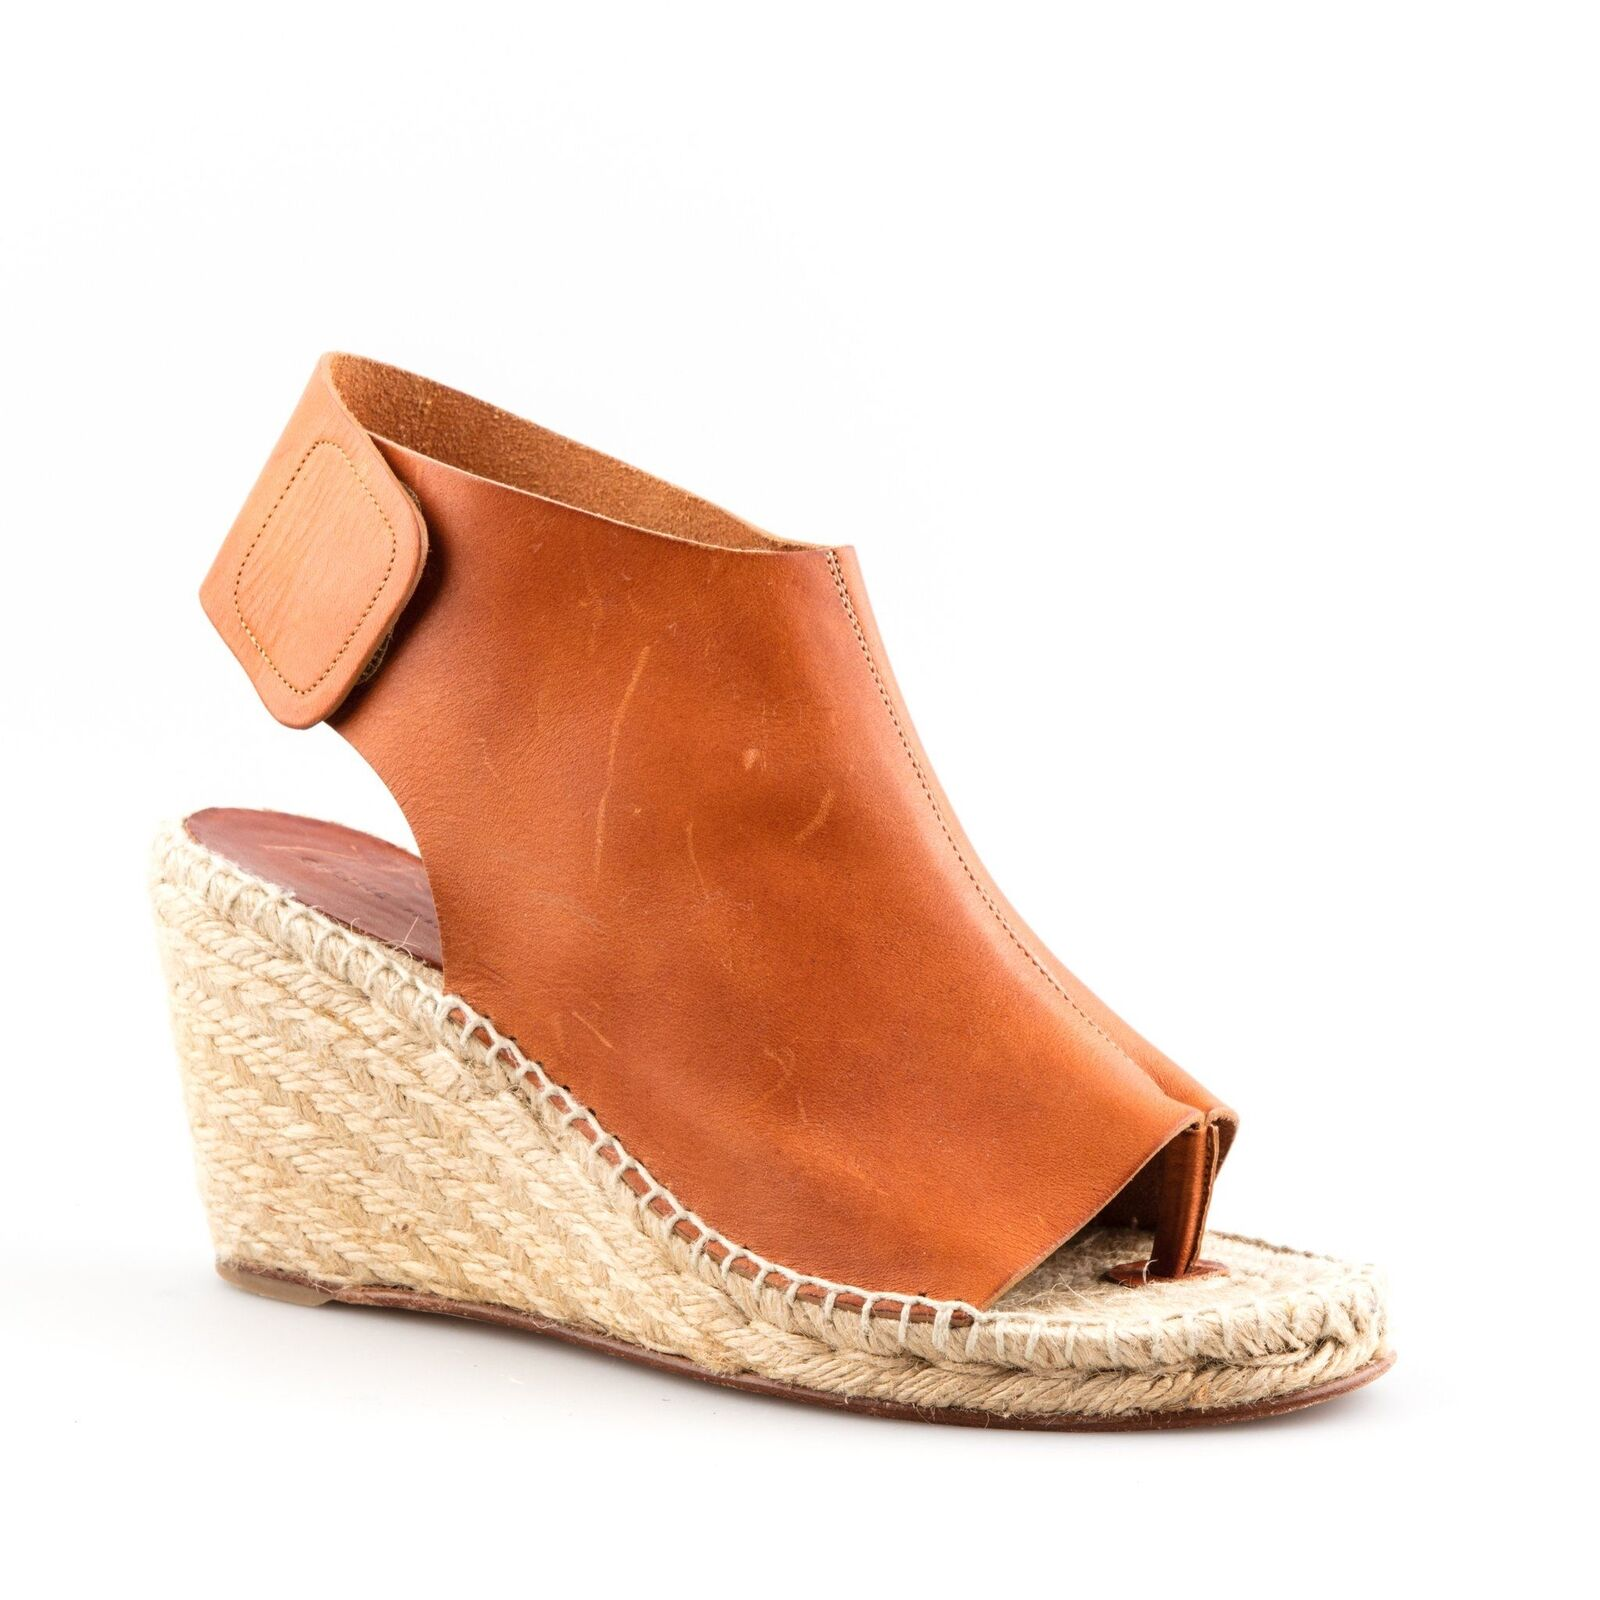 Céline Brown Leather Open Toe Espadrille Wedges - Size 39